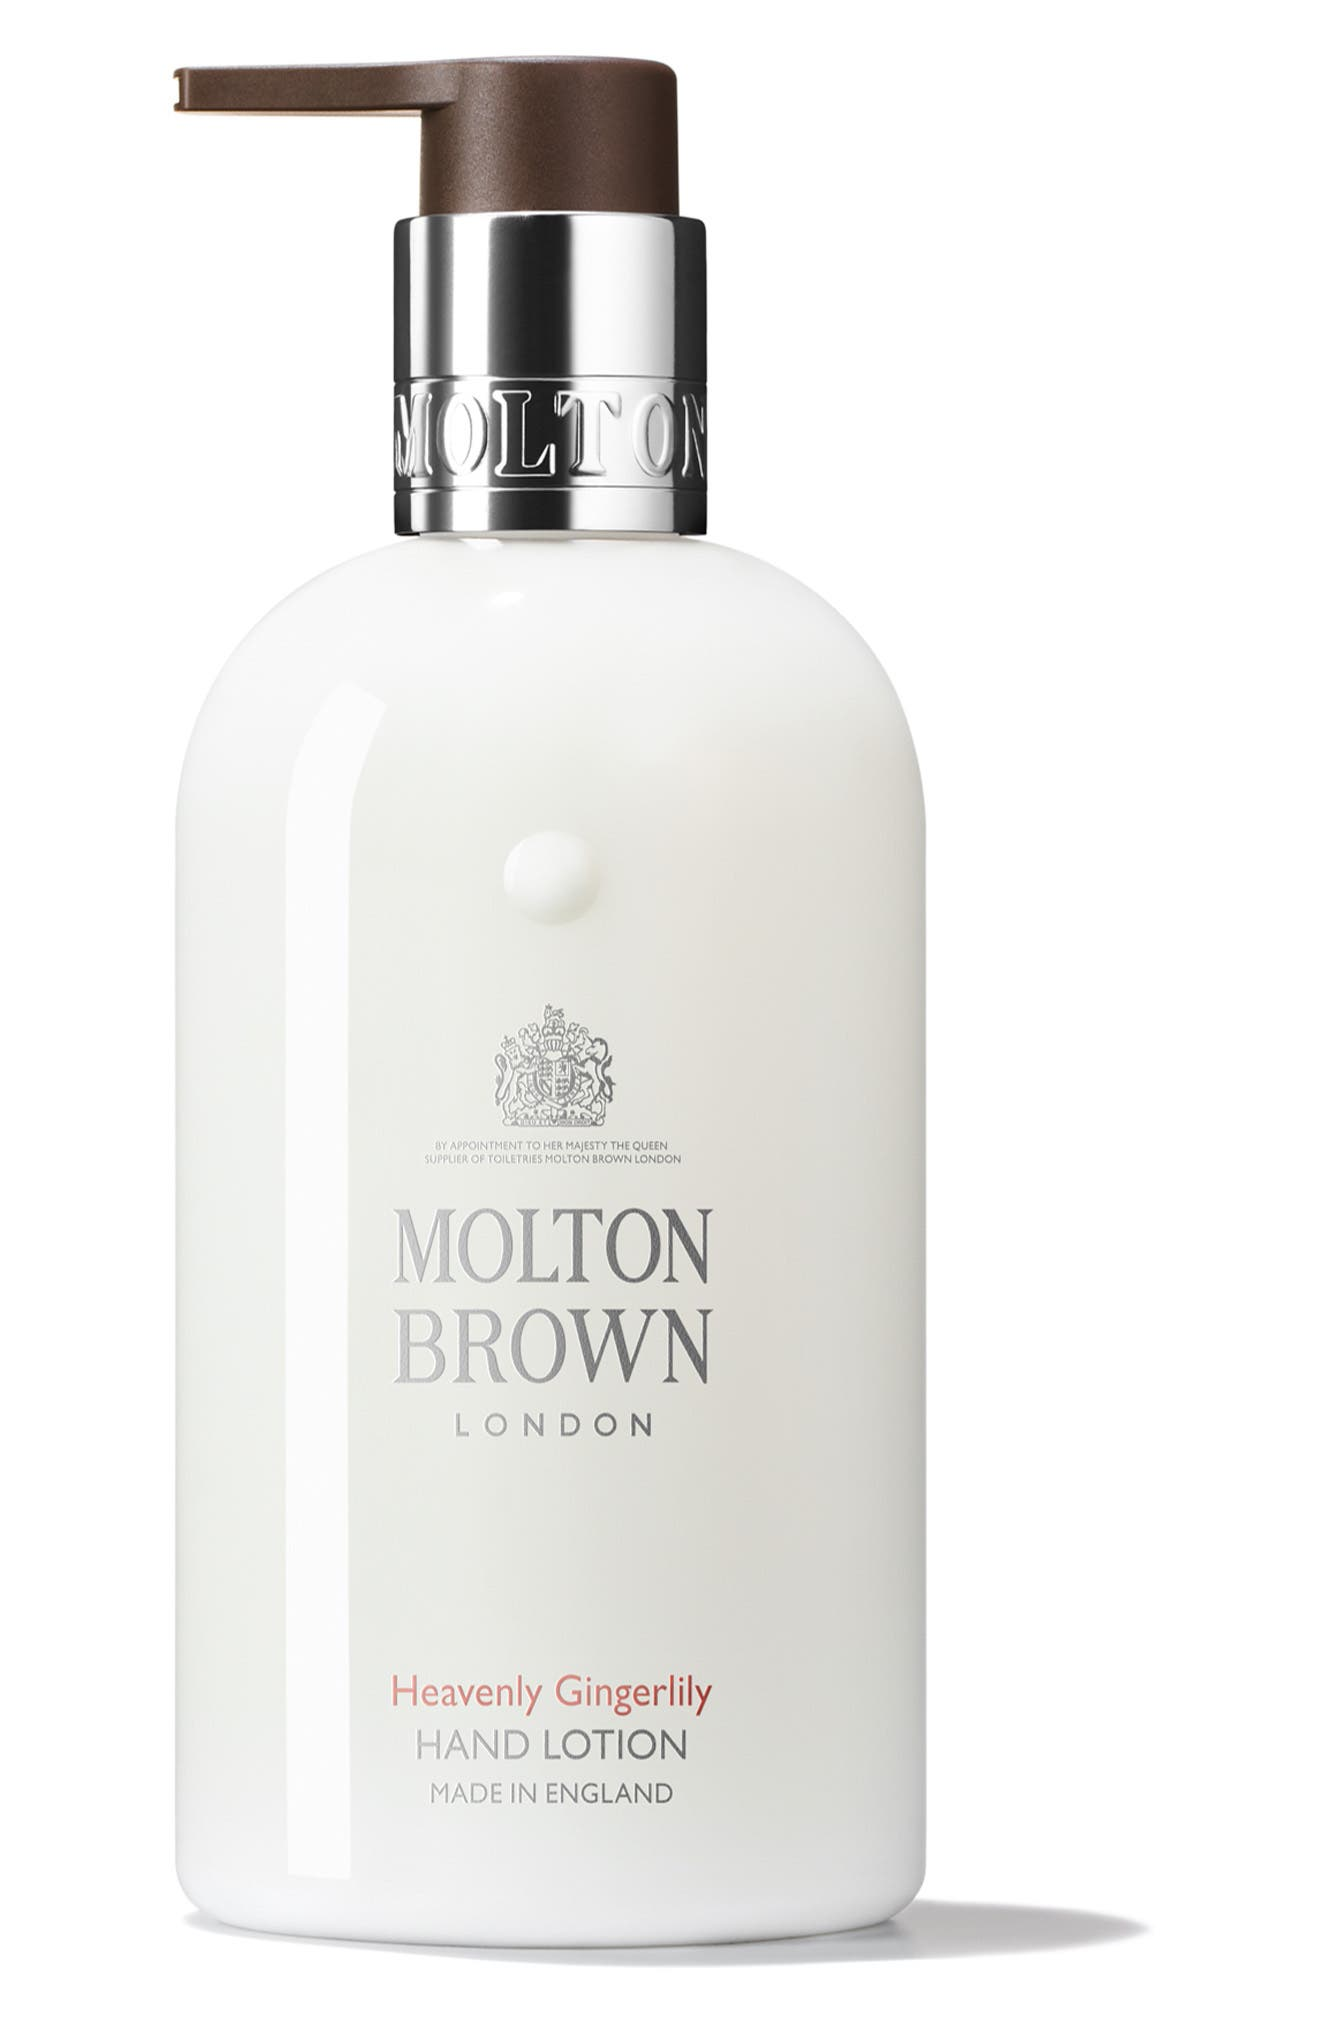 Hand Lotion in Coastal & Sea Fennel at Nordstrom